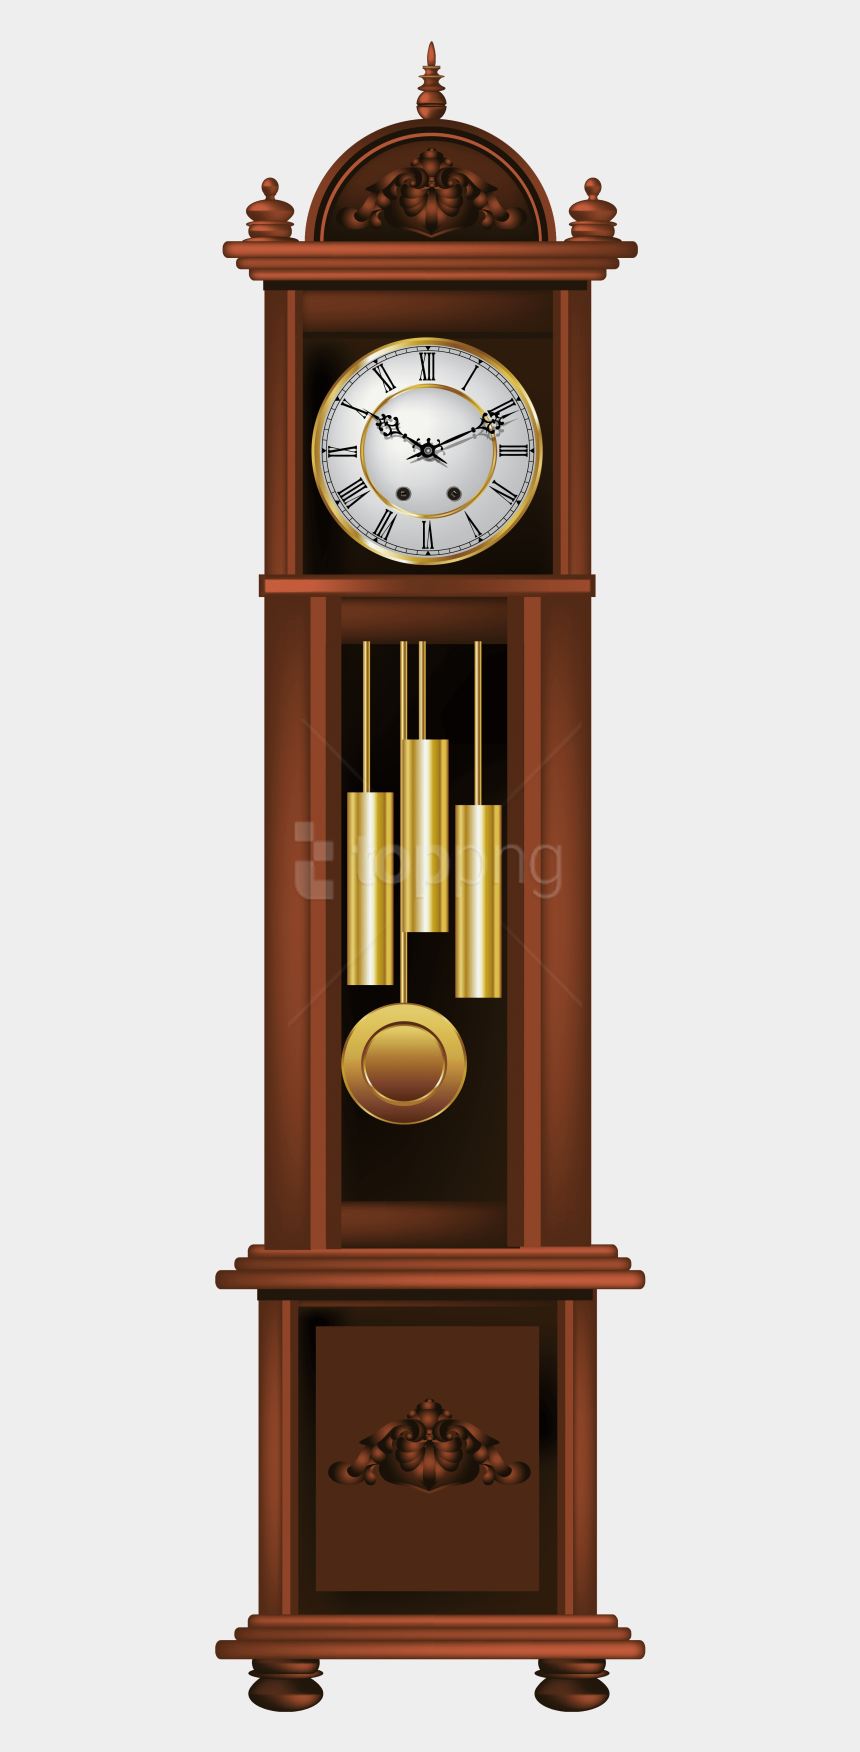 timer clipart, Cartoons - Grandfather Clock Clipart Png